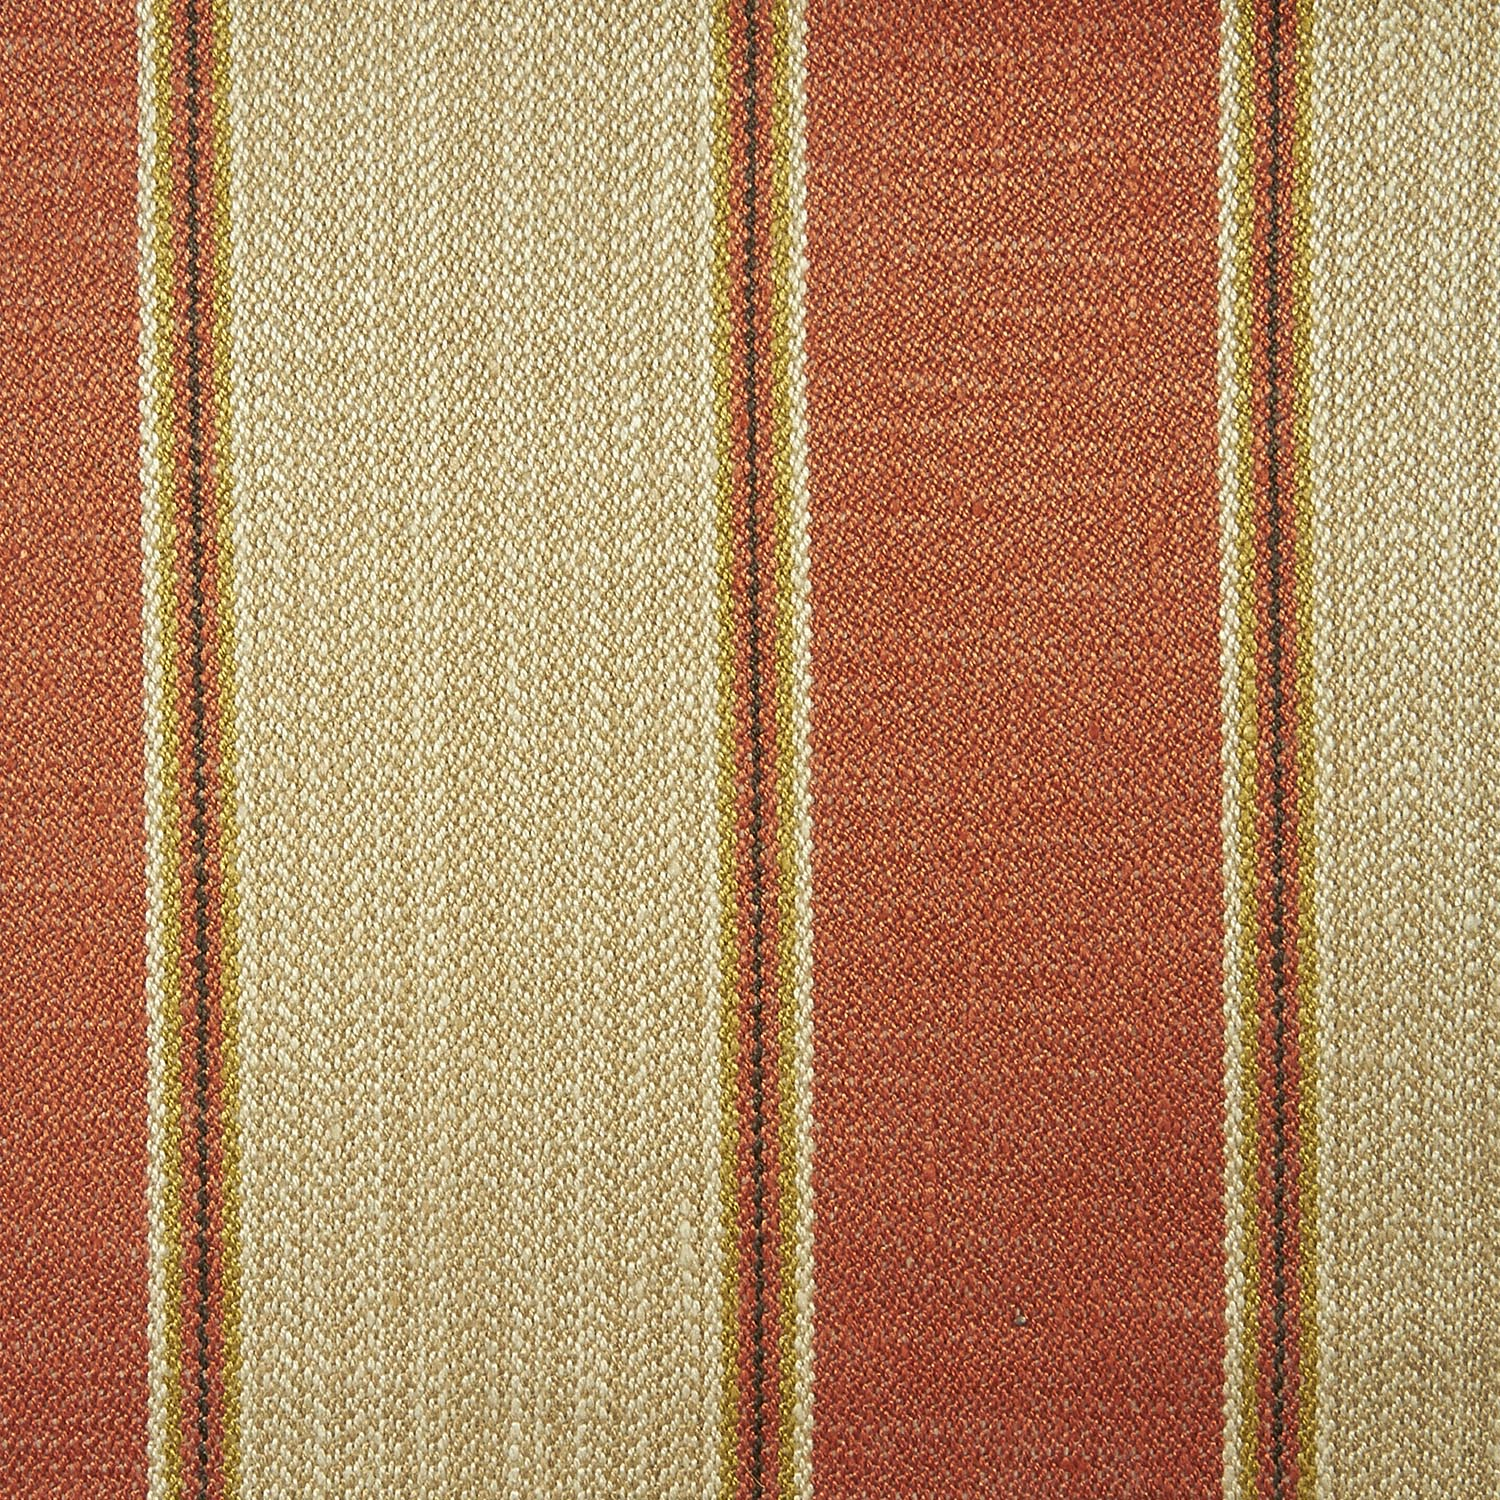 """<p><strong>LAUNCESTON STRIPE<span style=""""color:red""""> discontinued</span></strong>orange 1300-01 / Contact for stock availability</a></p>"""